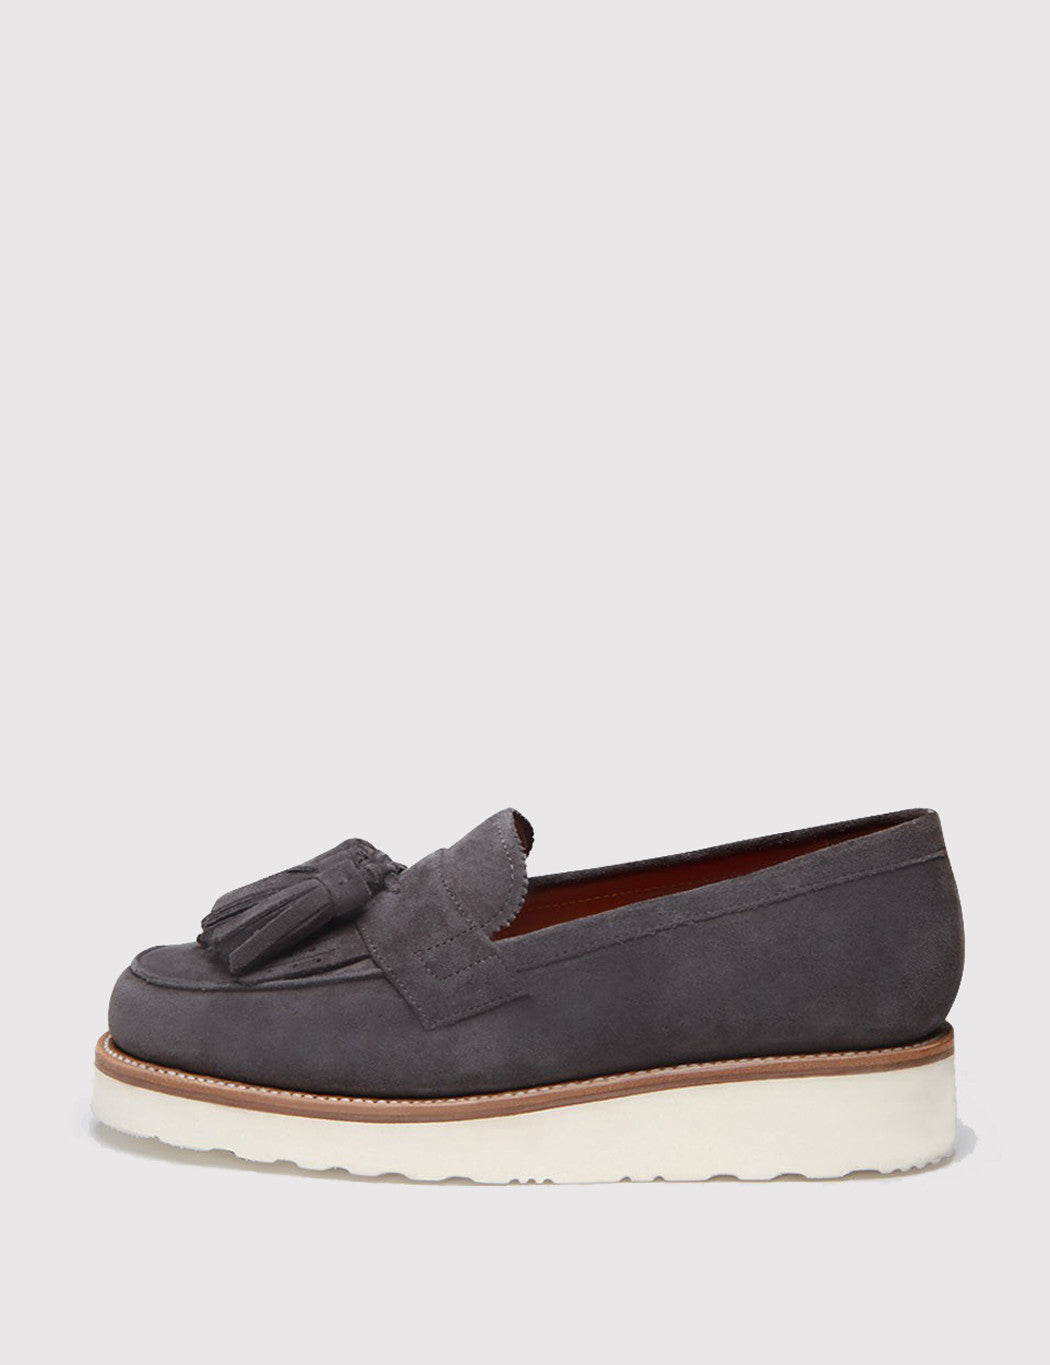 Grenson Womens Clara Suede Loafer - Charcoal